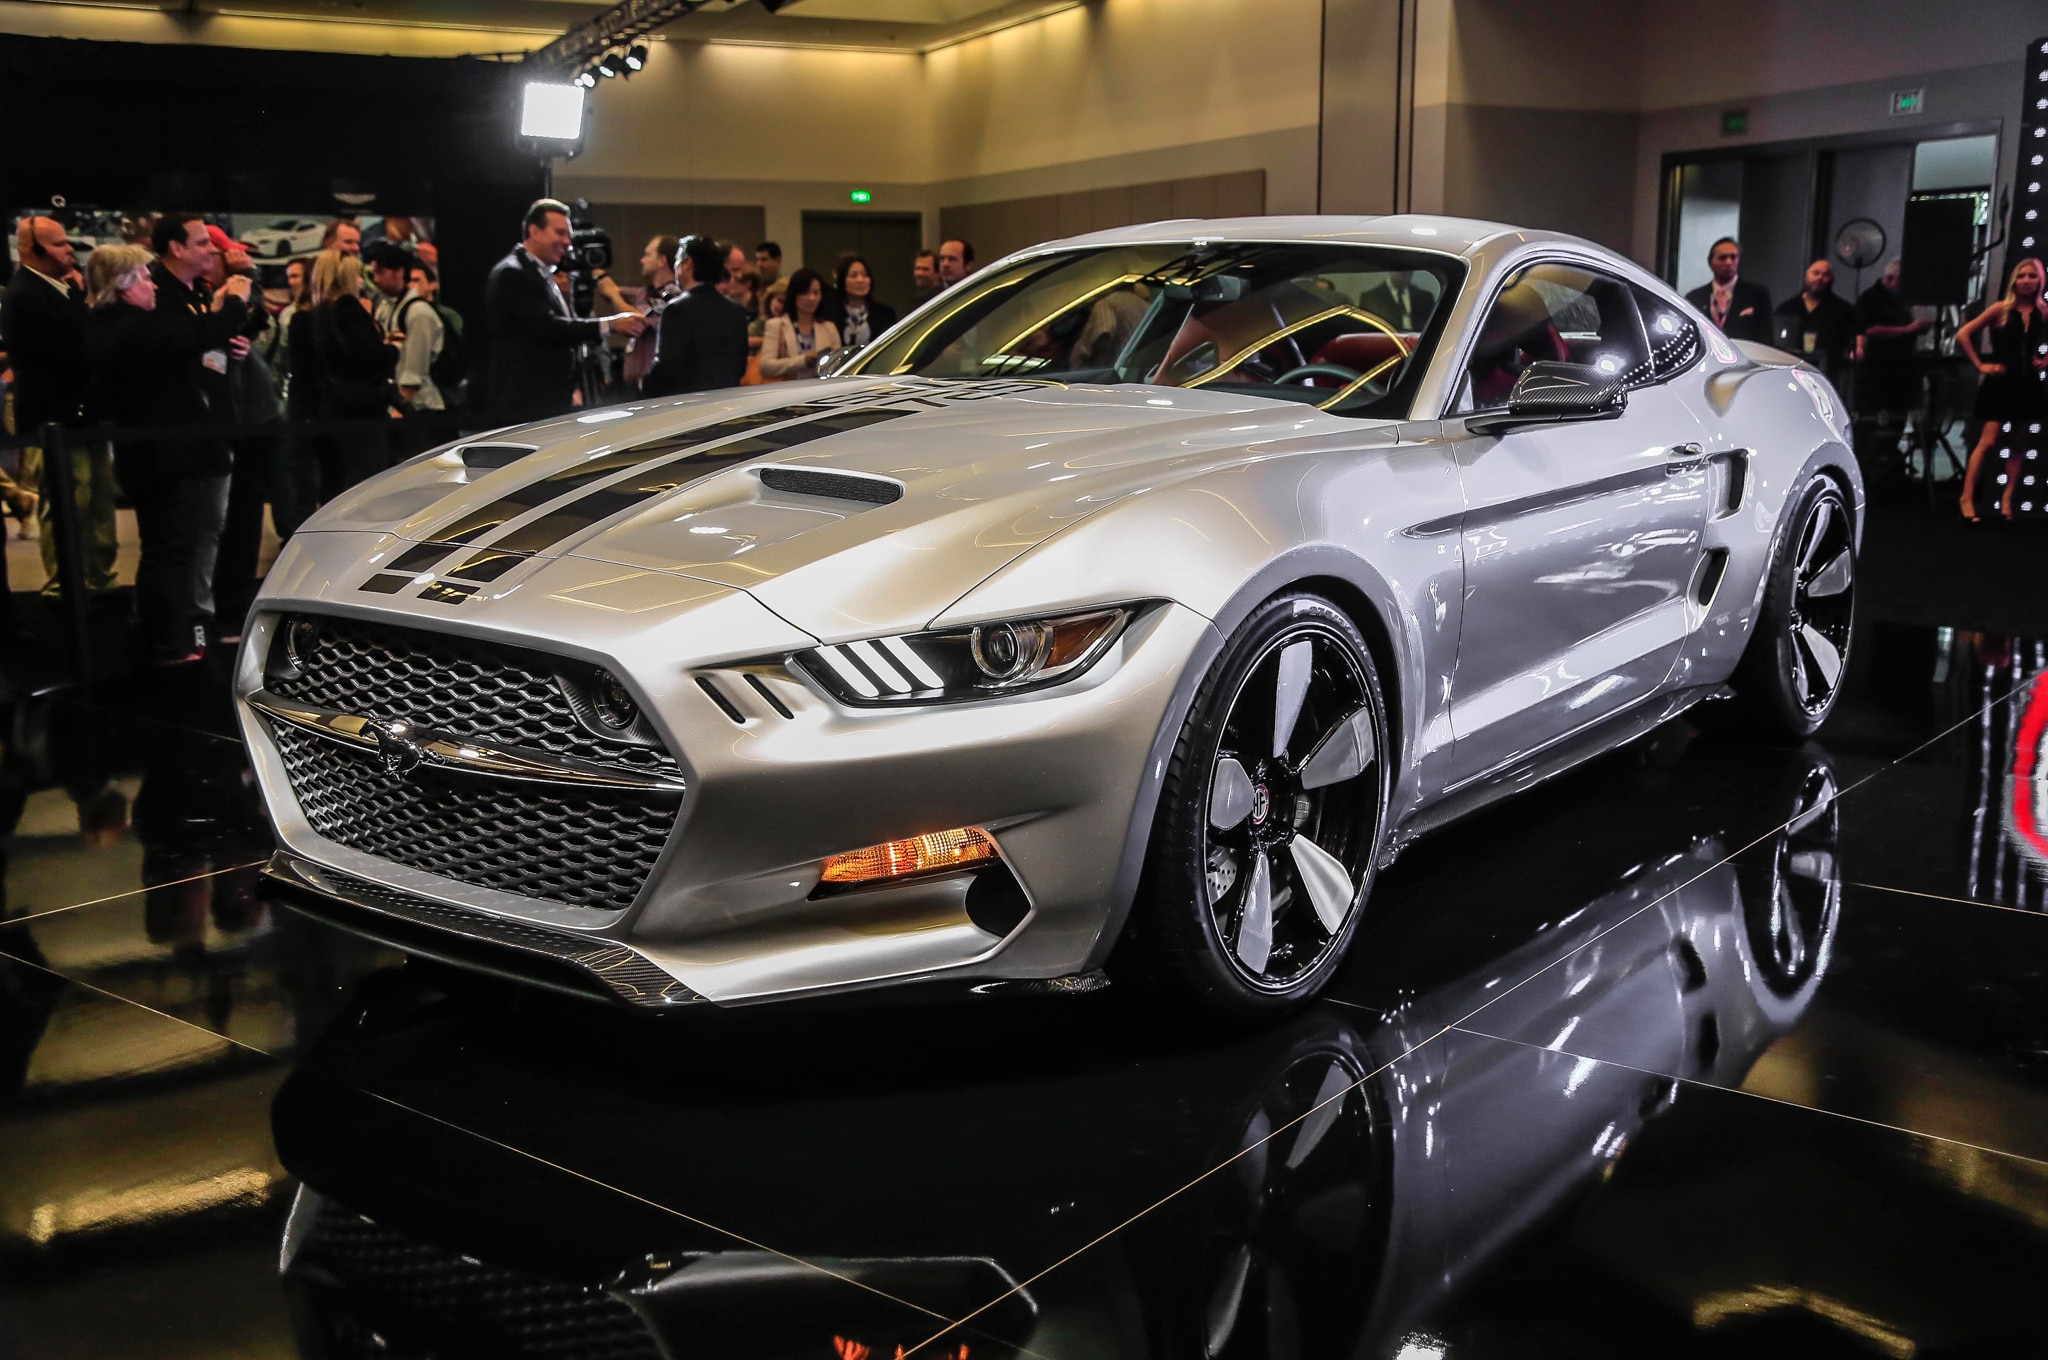 Michael Bay Reveals New Barricade Ford Mustang ... Mustang